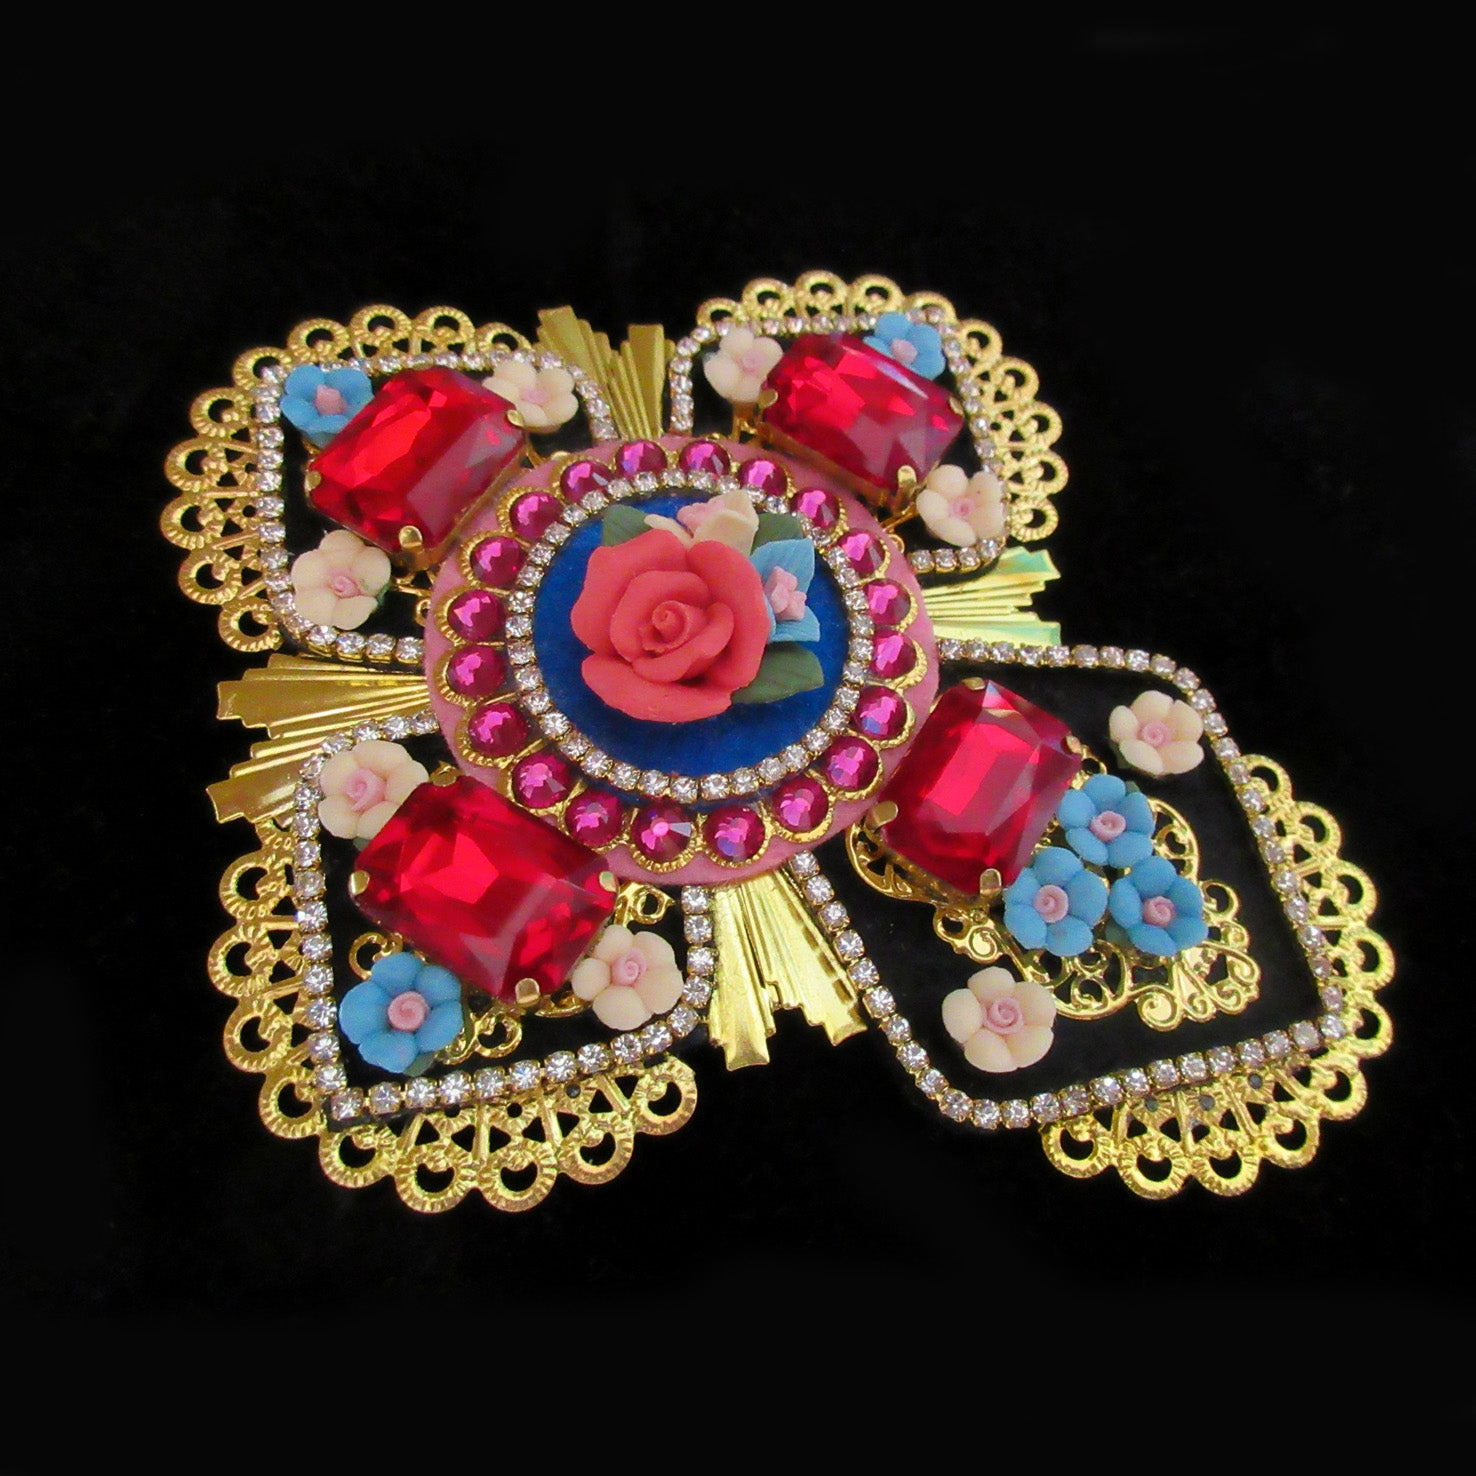 Mouchkine Jewelry haute couture glamour luxury cross brooch, handmade in france.